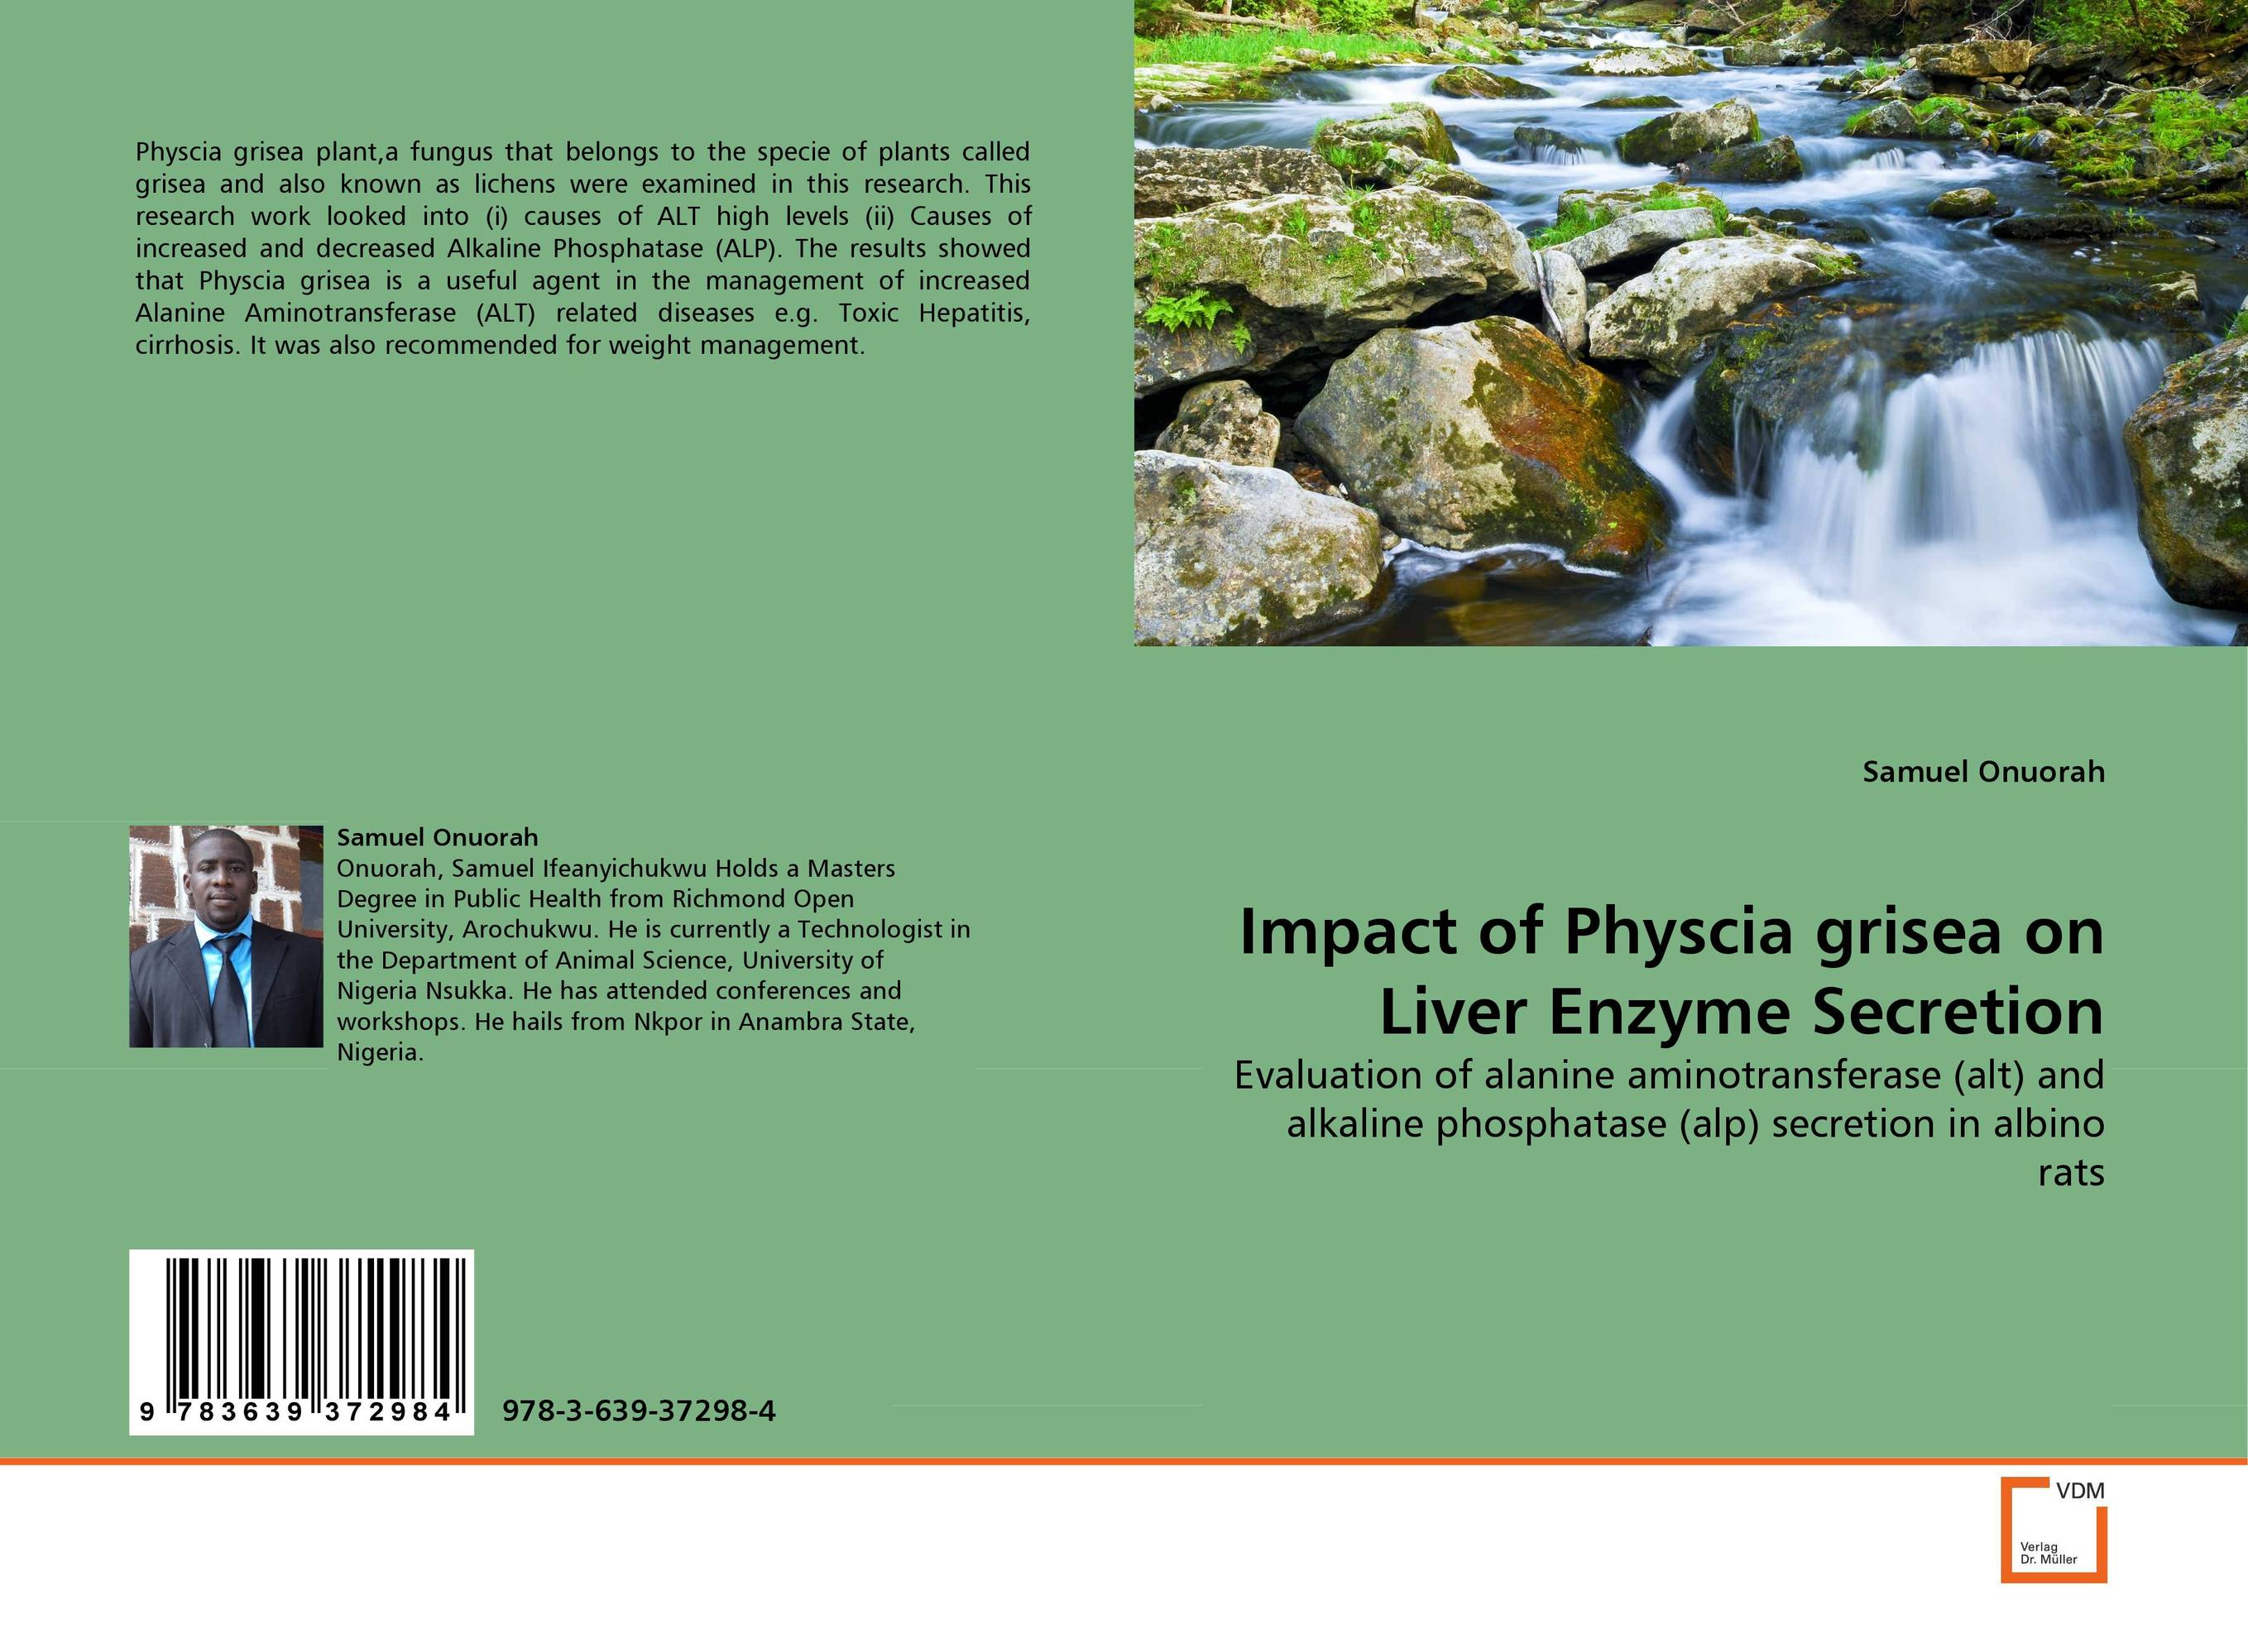 Impact of Physcia grisea on Liver Enzyme Secretion unusual causes of raised serum alanine aminotransferase